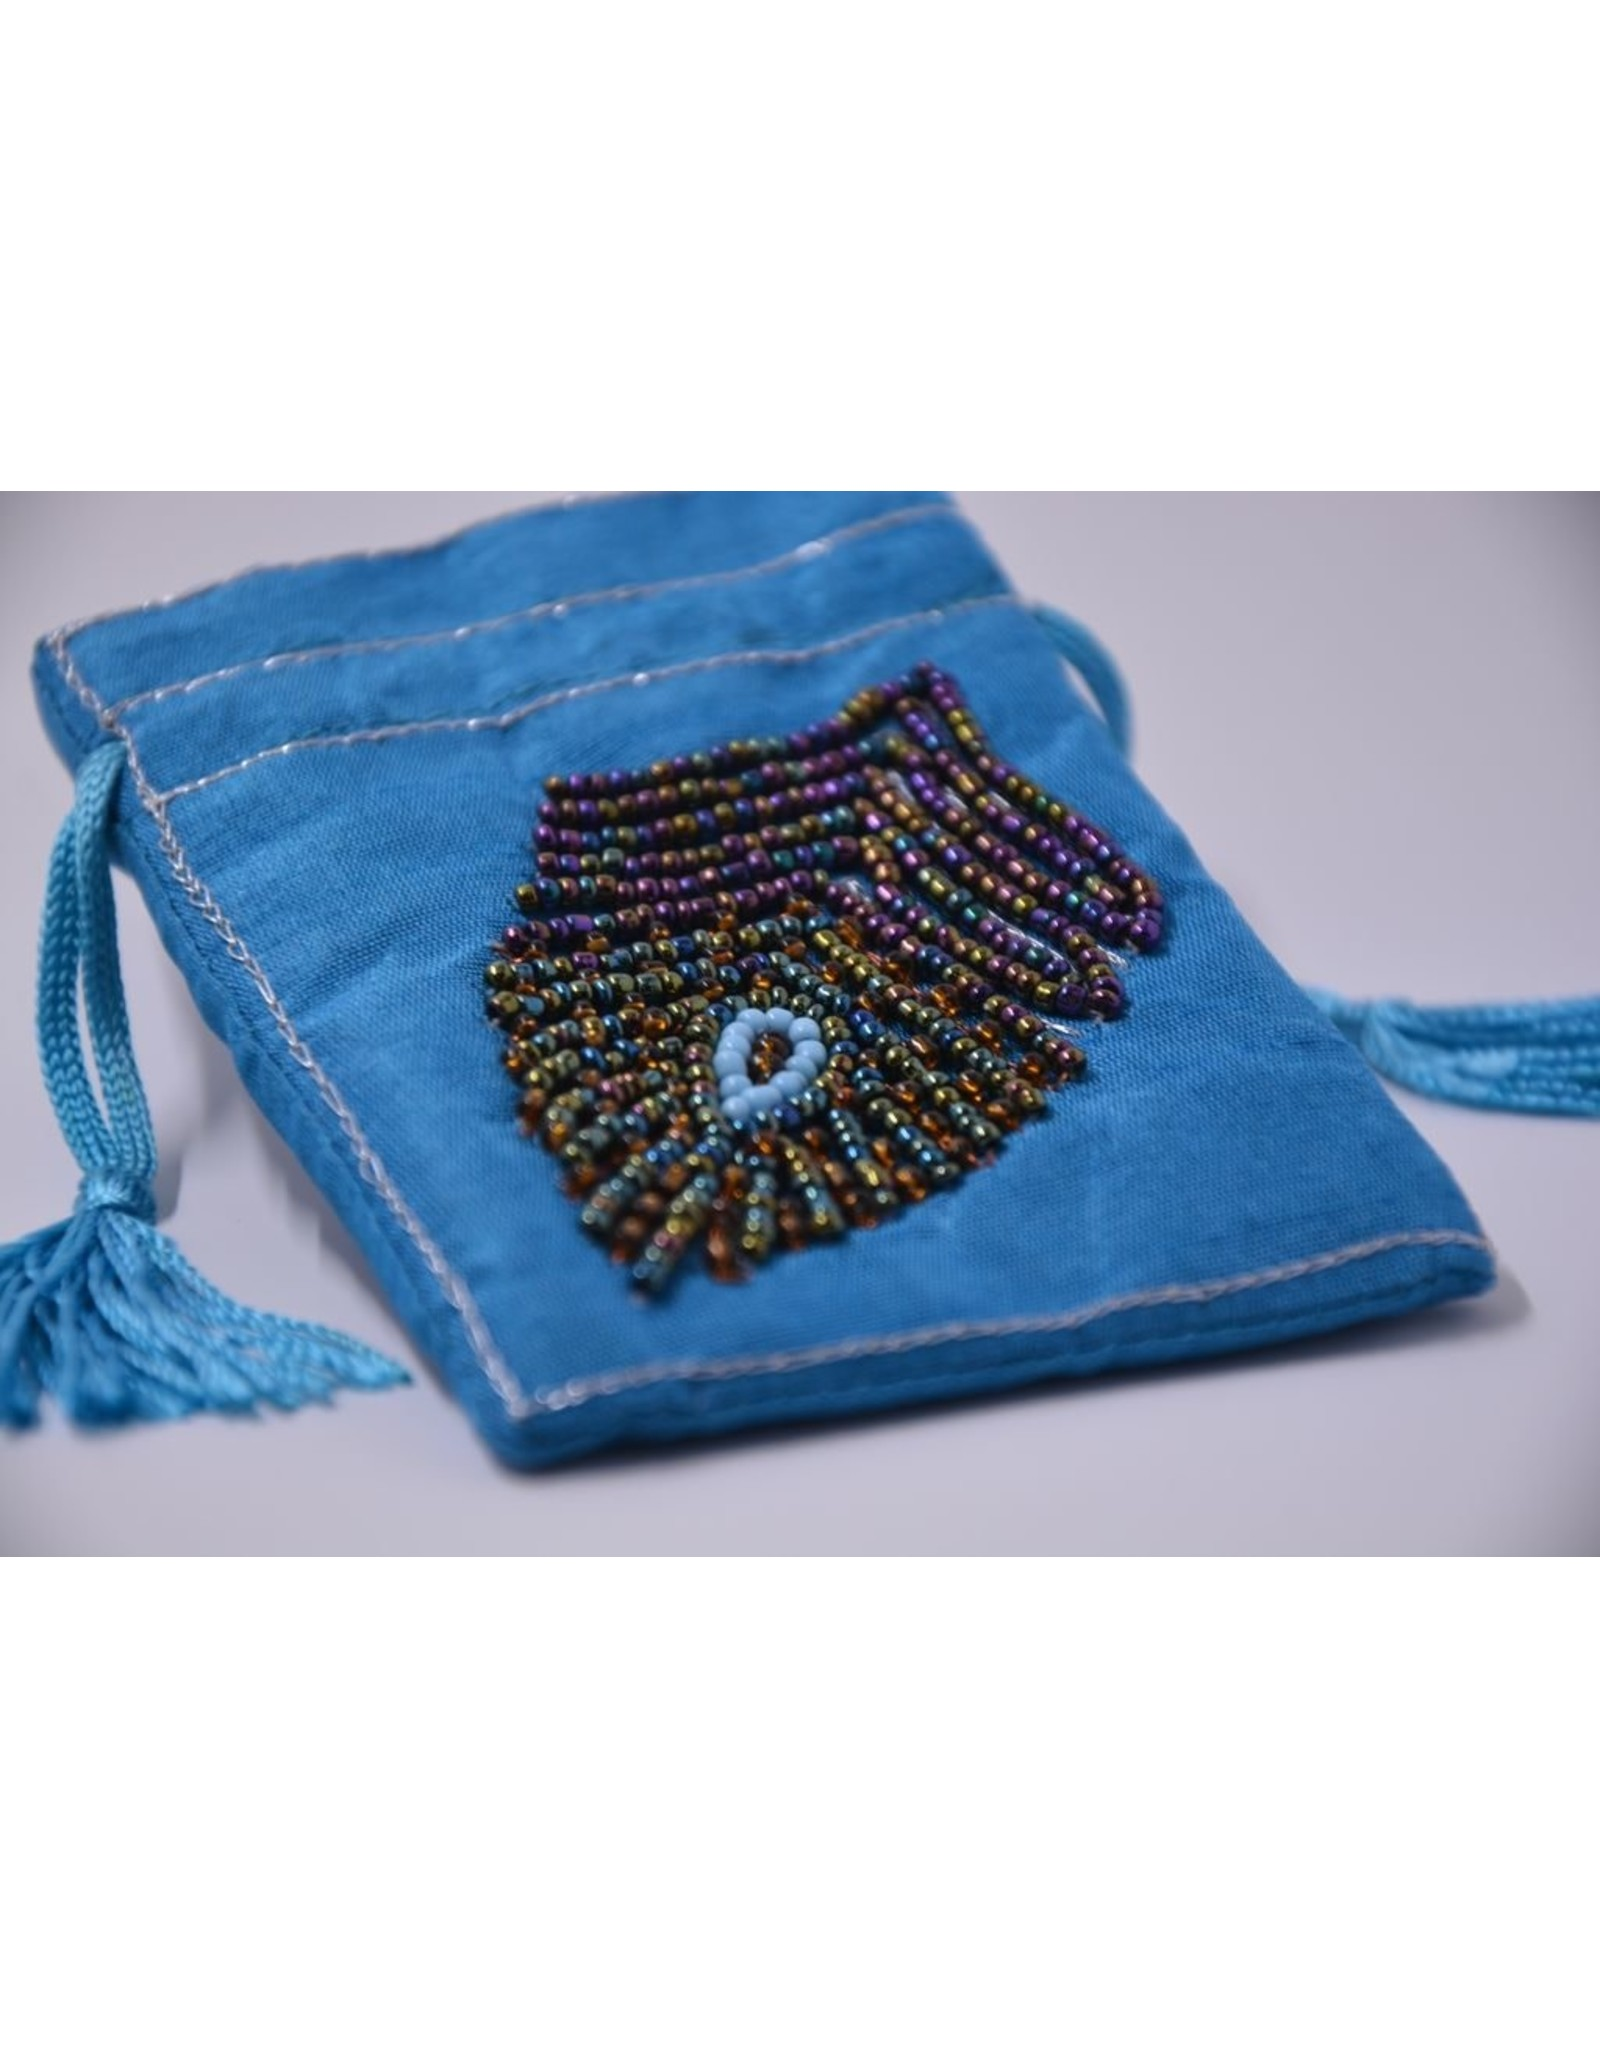 NON-UNIFORM Gift Pouch - Handmade Small Embroidered Beaded Peacock Feather Jewelry Pouch (India)